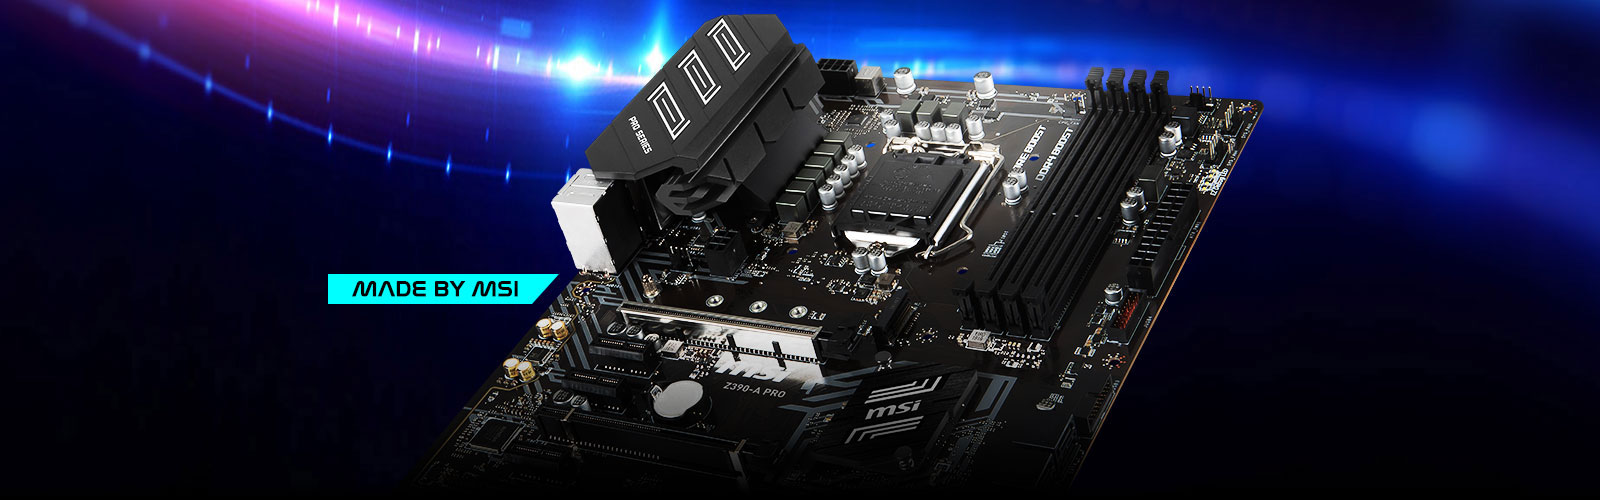 Motherboard made by MSI.